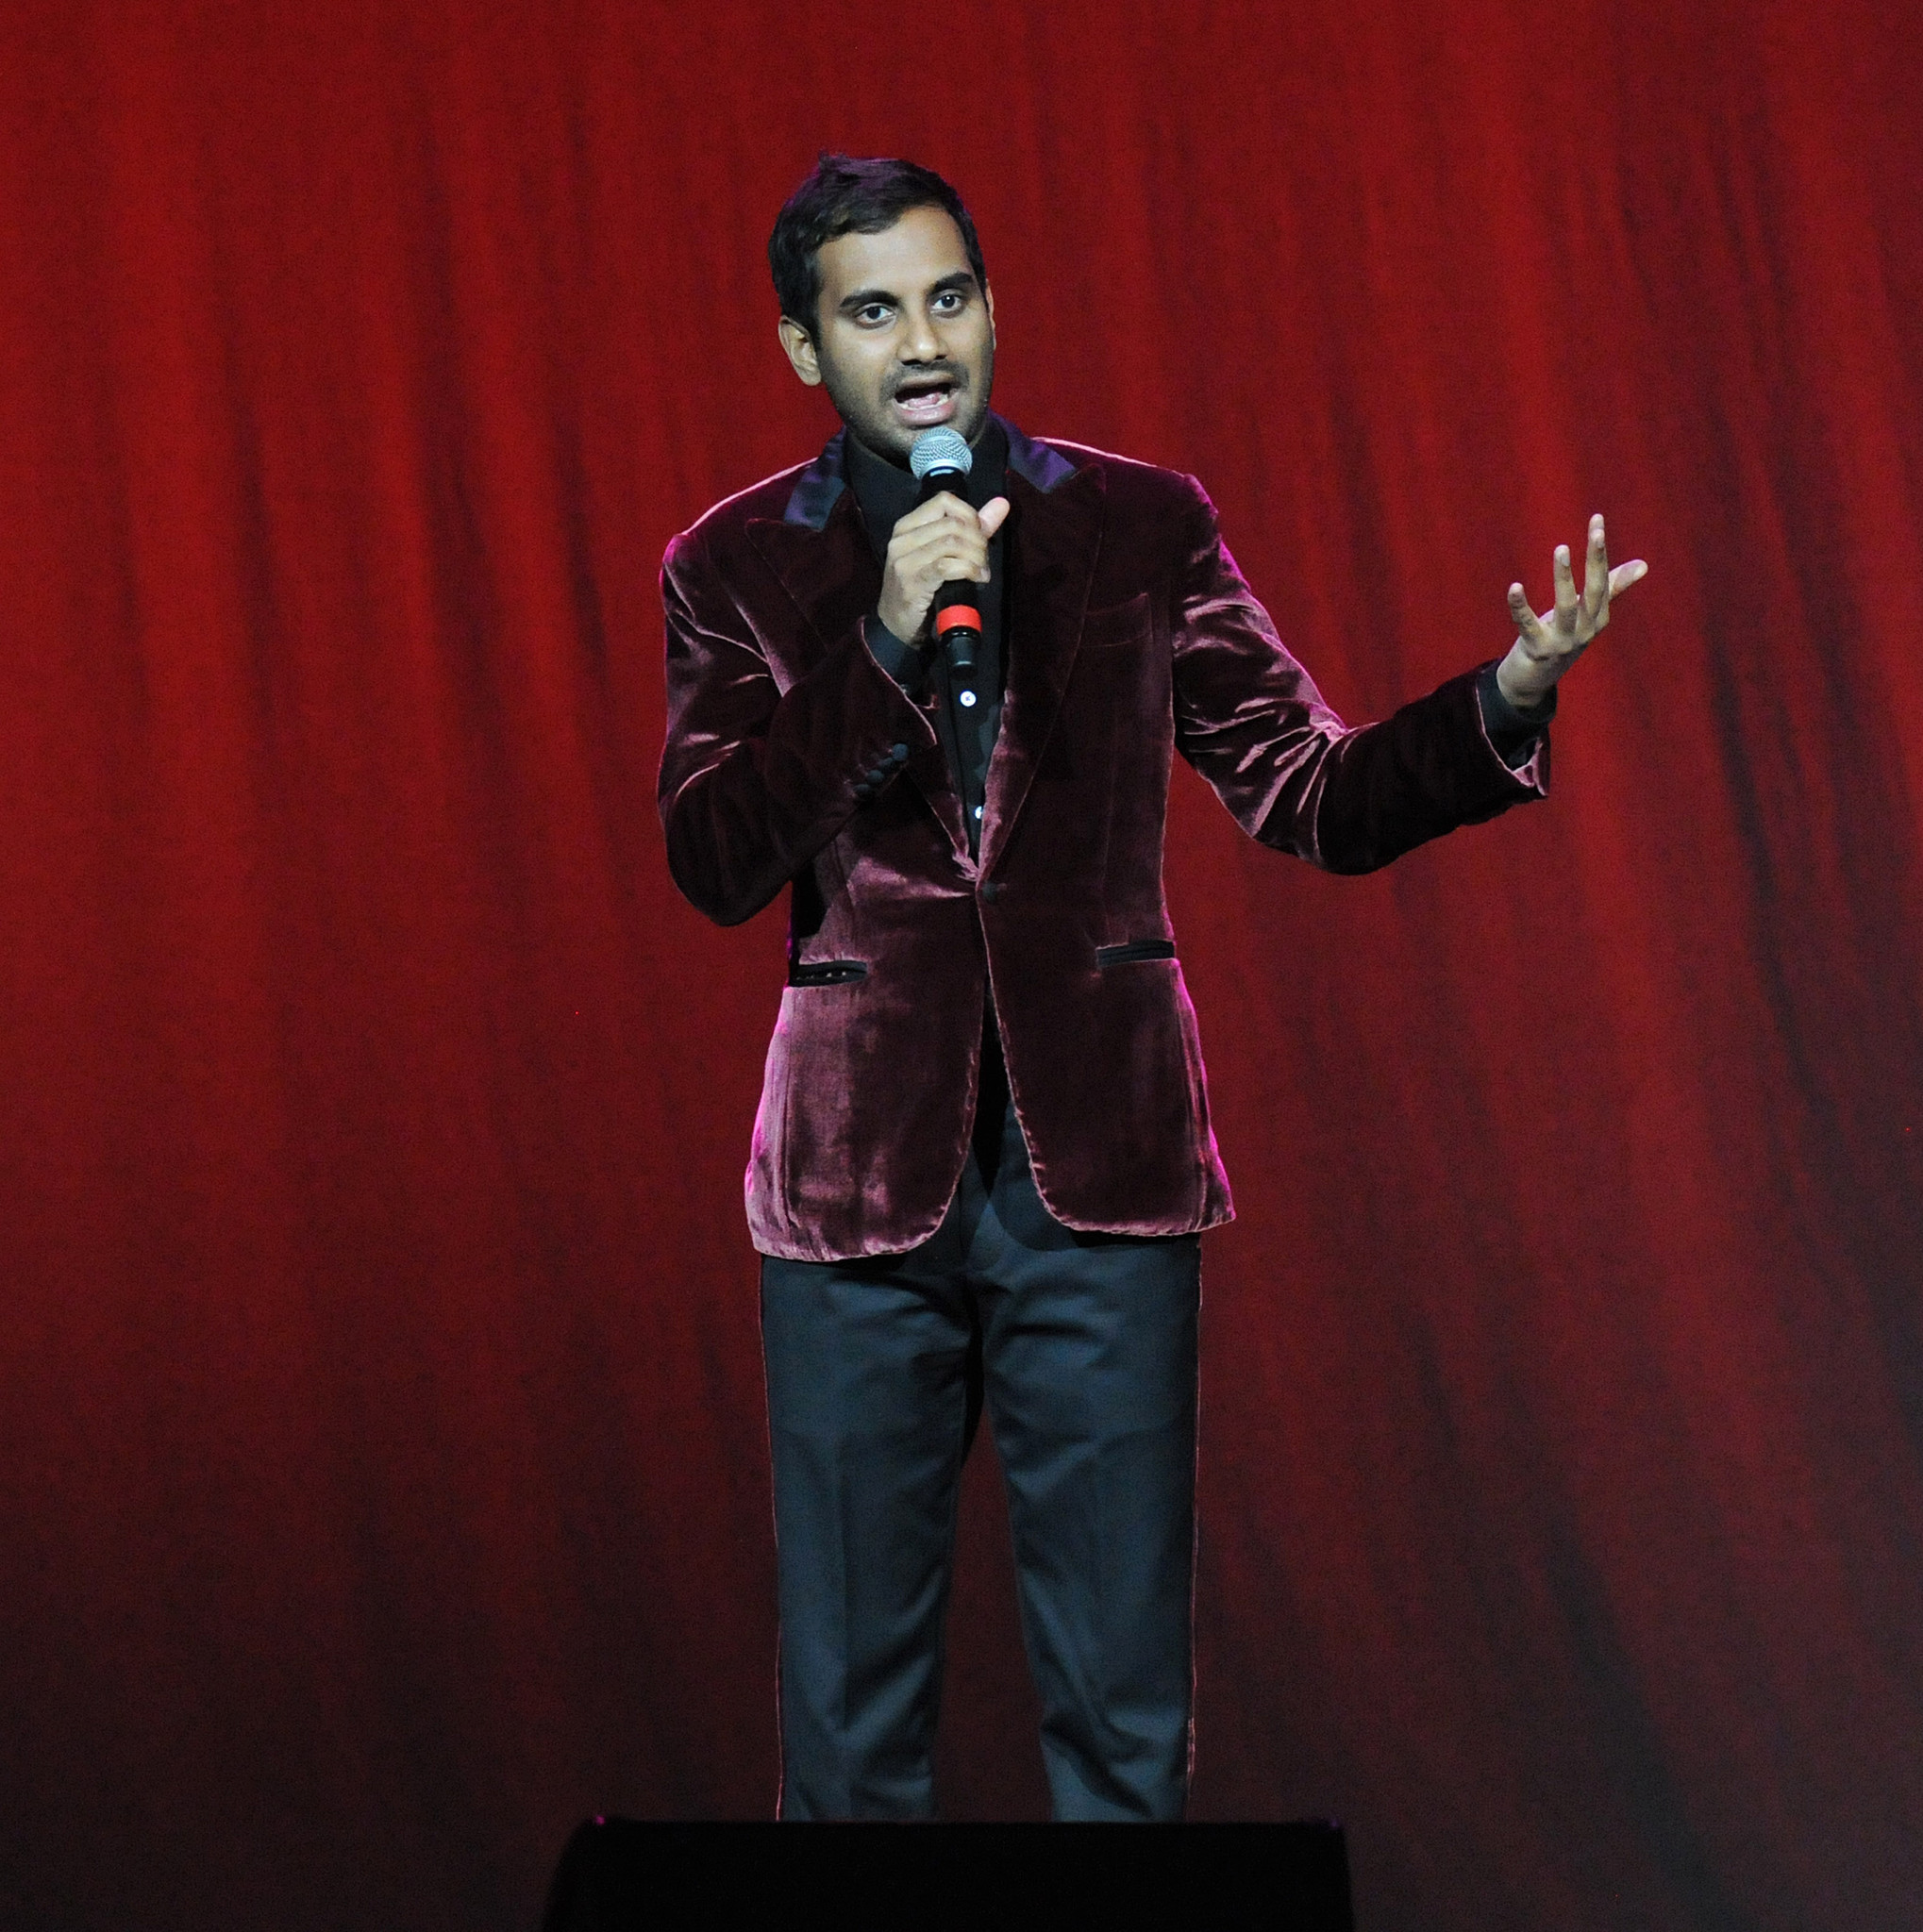 Celeb-spotting around South Florida - Aziz Ansari at Hard Rock Live at Seminole Hard Rock Hotel & Casino